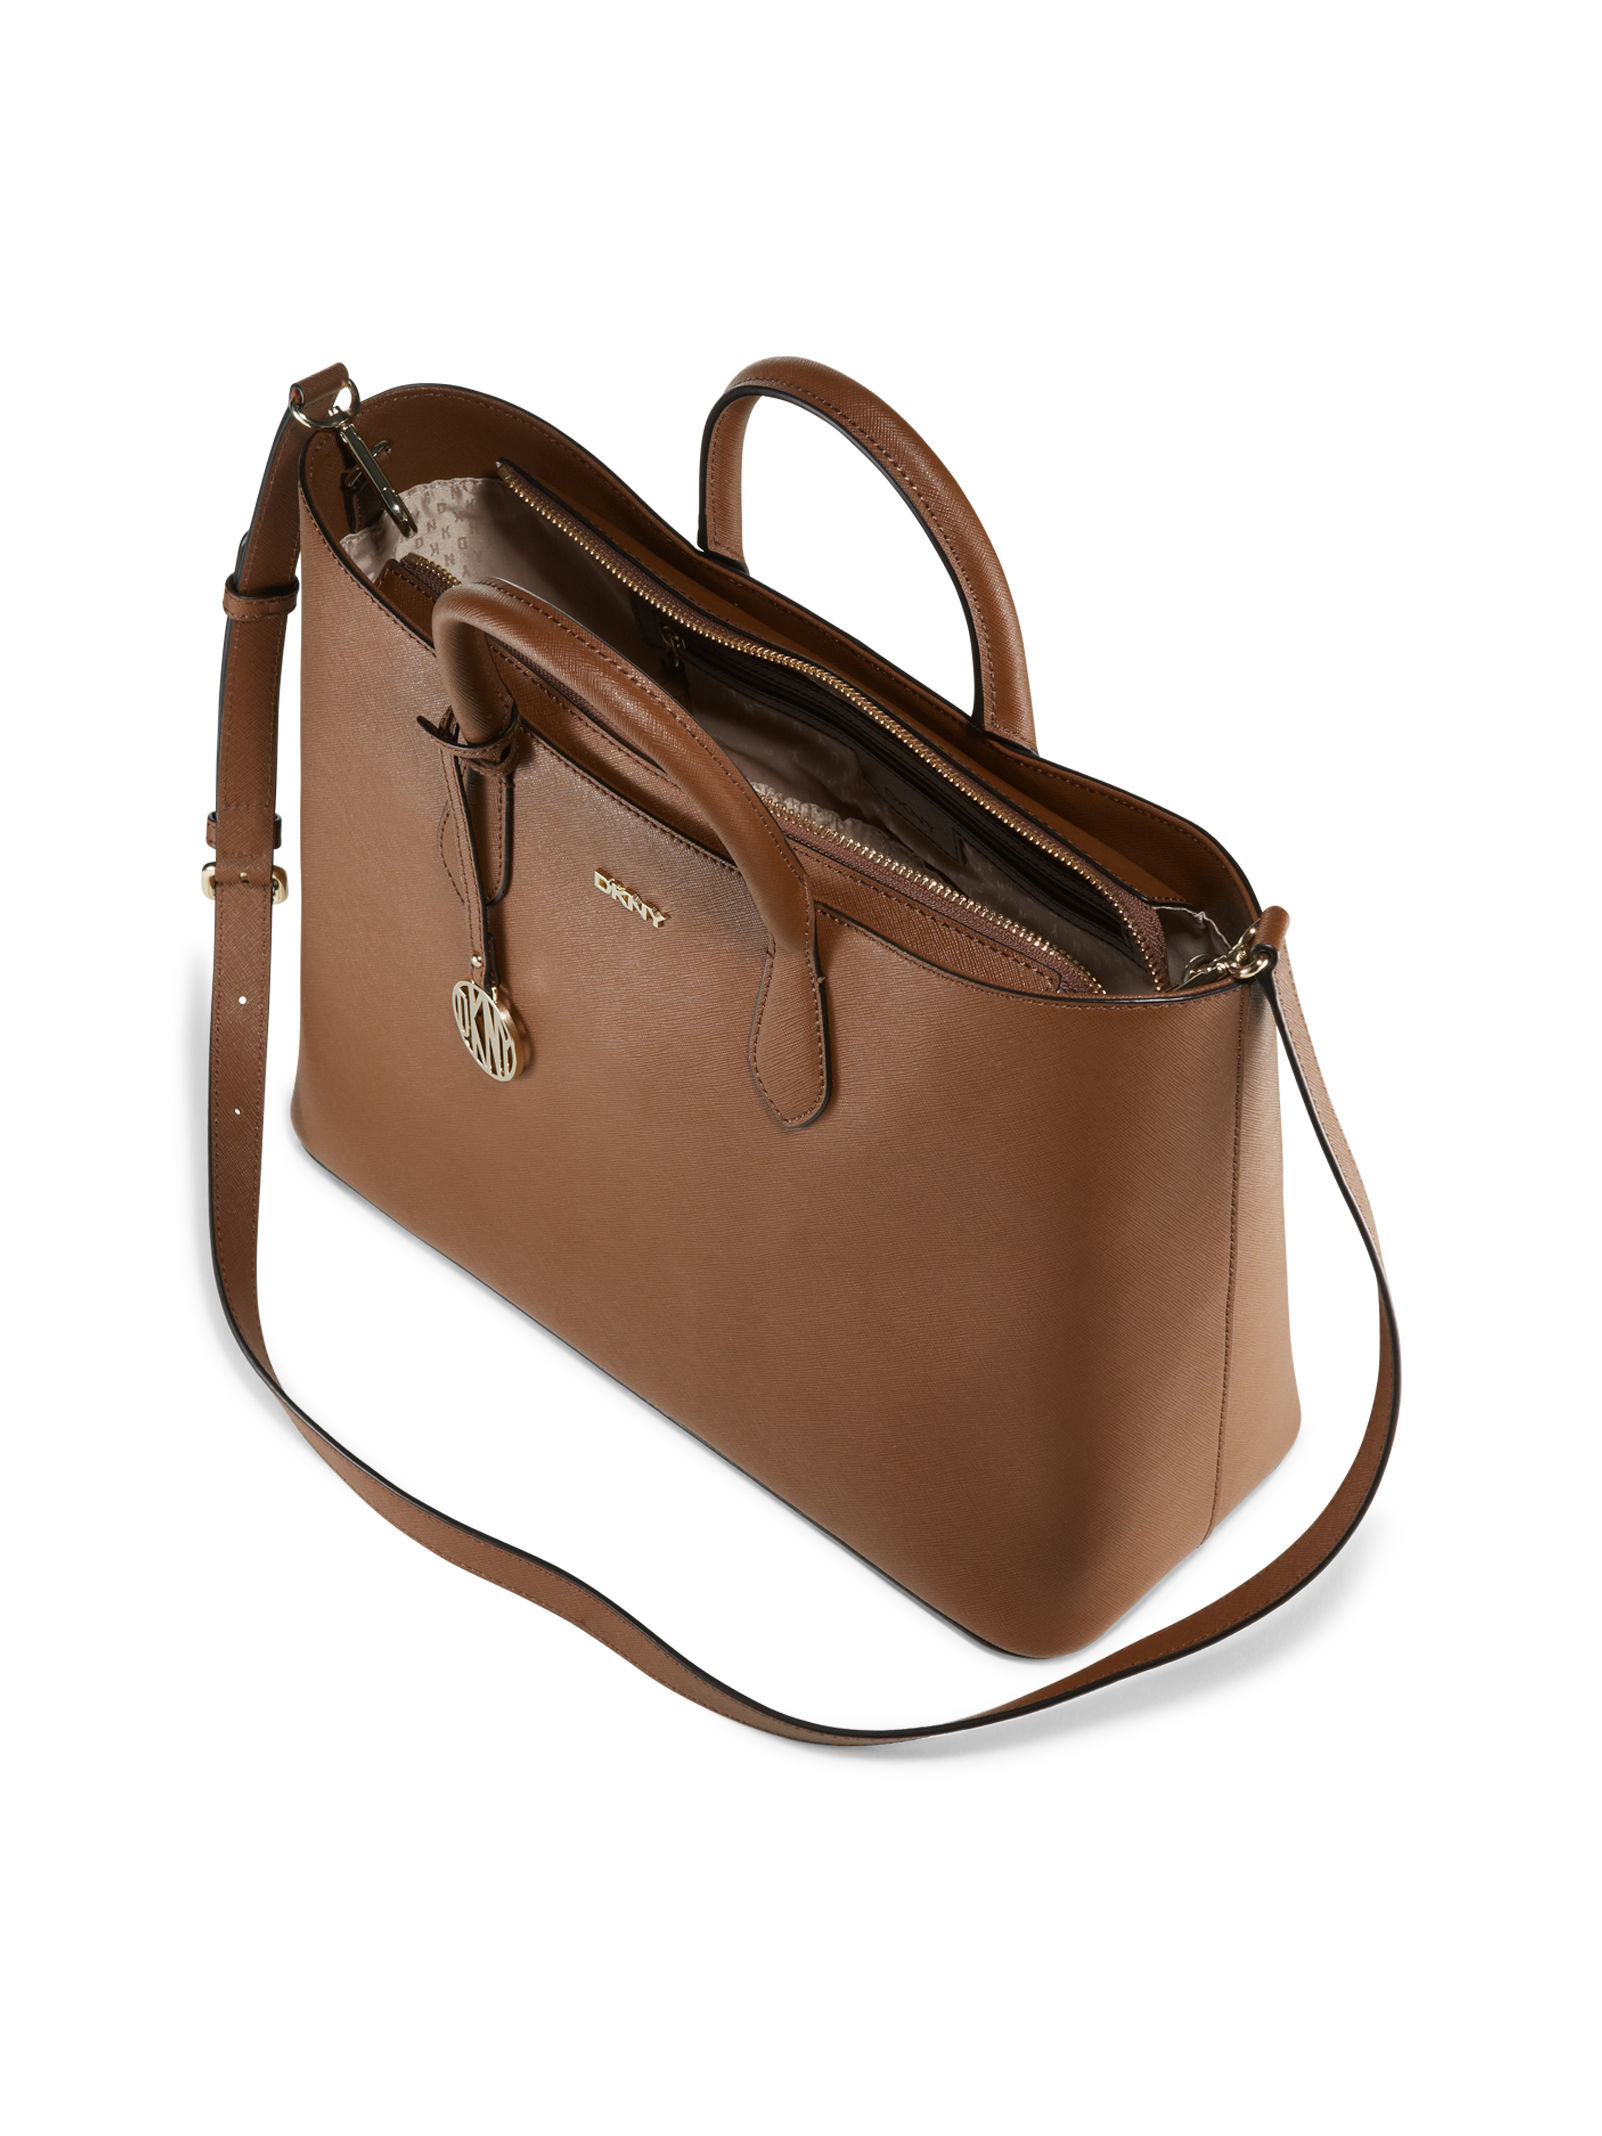 f90dd99164 The results of the research dkny brown leather handbag